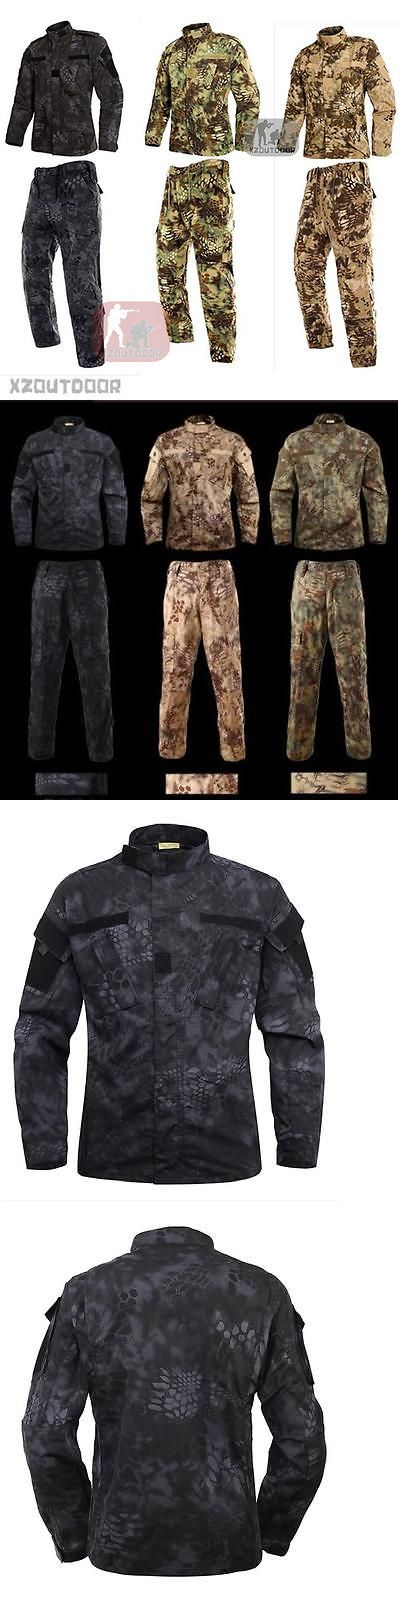 Other Uniforms and Work Clothing 163528: Airsoft Combat Military Bdu Tactical Uniform Jacket Pants Special Forces Suit -> BUY IT NOW ONLY: $45.99 on eBay!